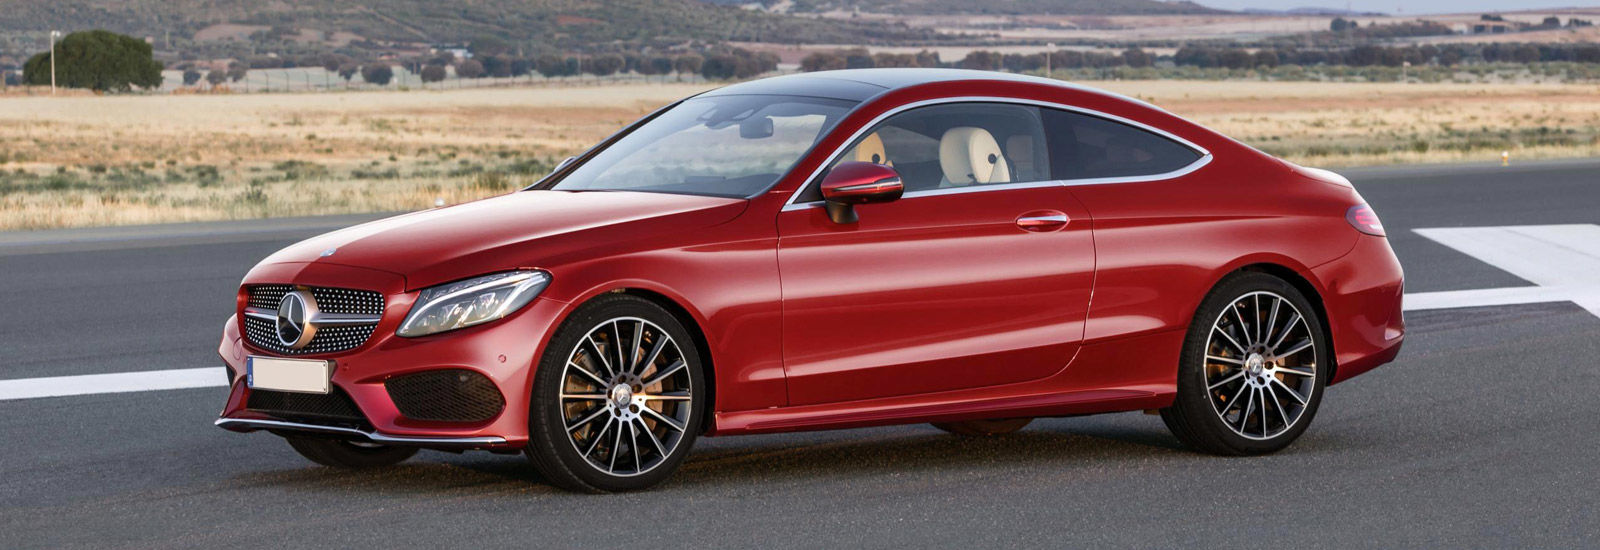 The most fuel efficient sports cars on sale carwow for Most fuel efficient mercedes benz